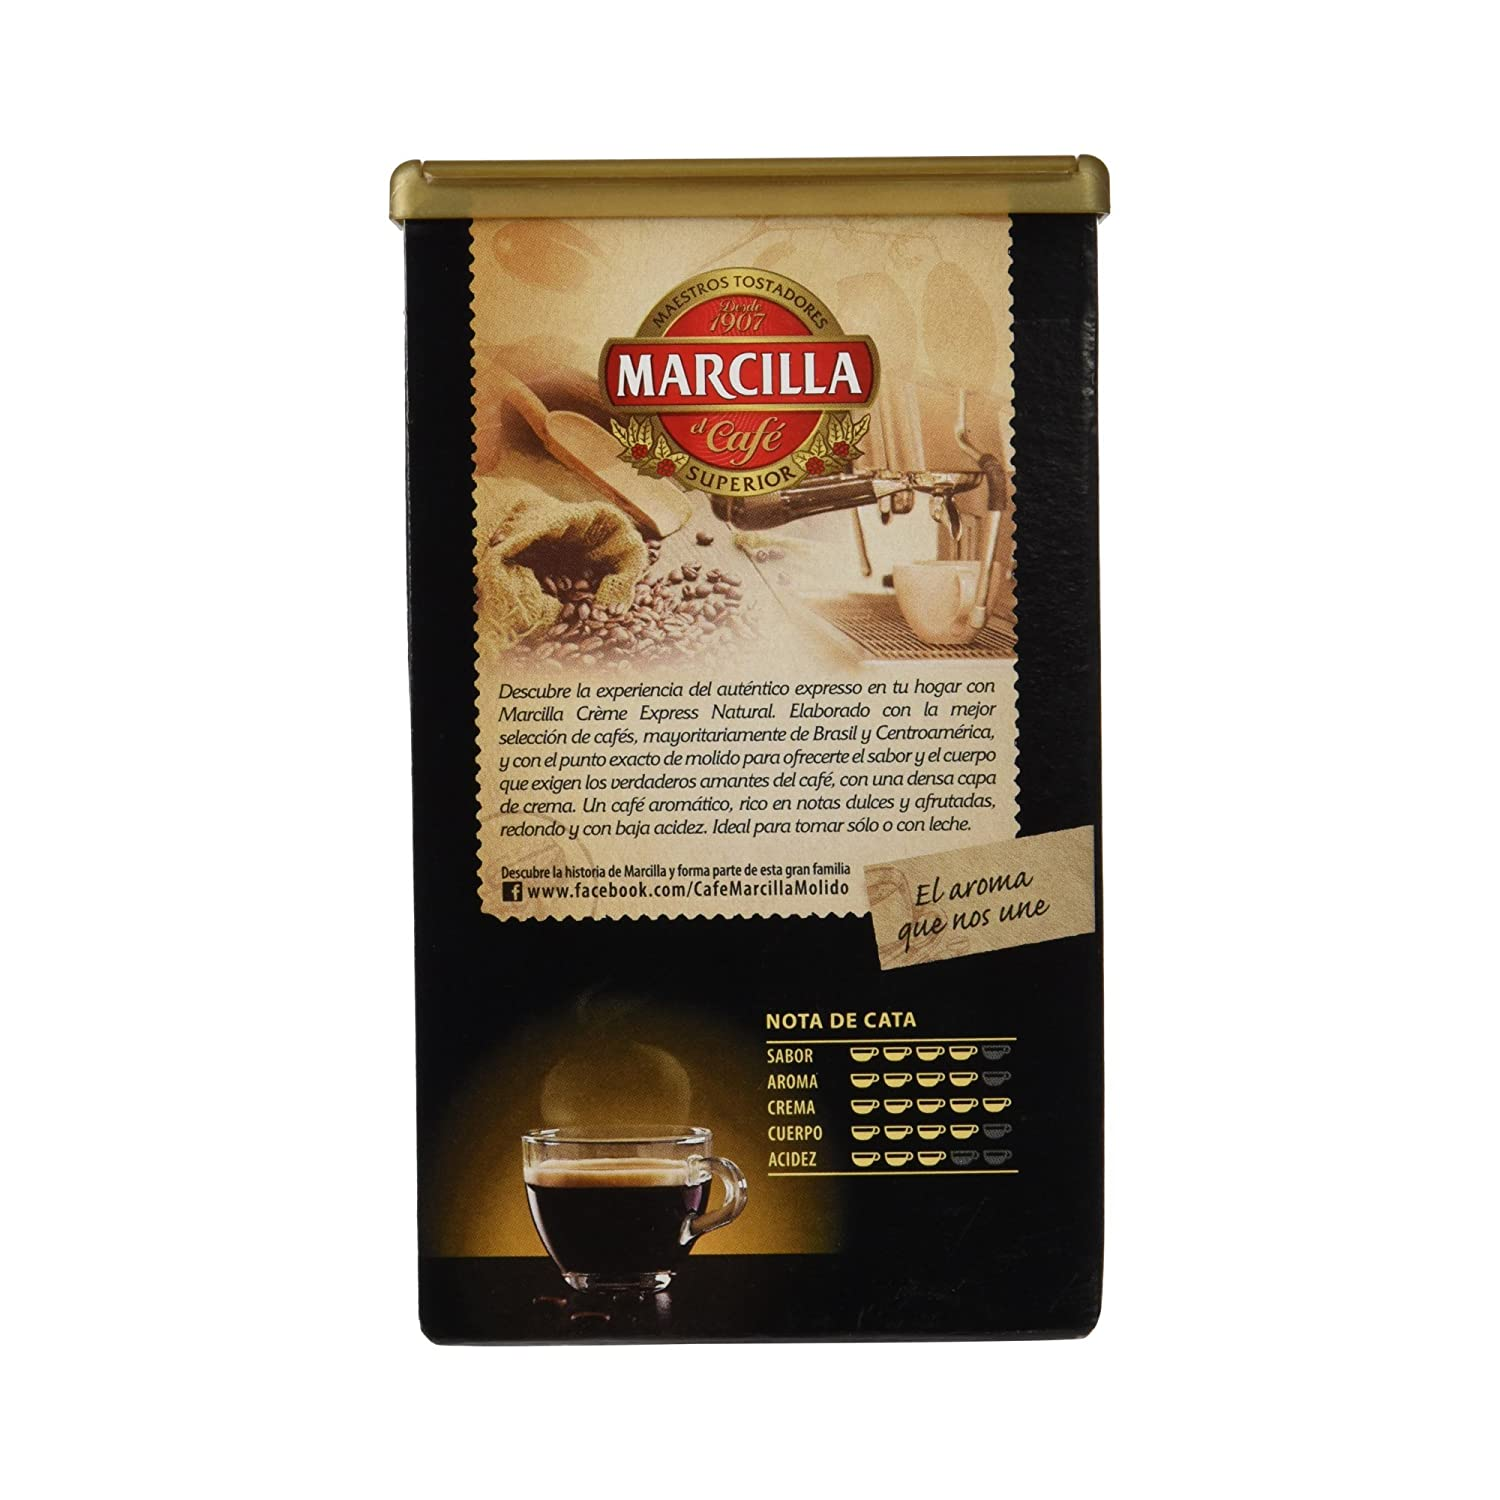 Amazon.com : Marcilla - Creme Express Natural - gemahlener Kaffee - 250 gr : Grocery & Gourmet Food